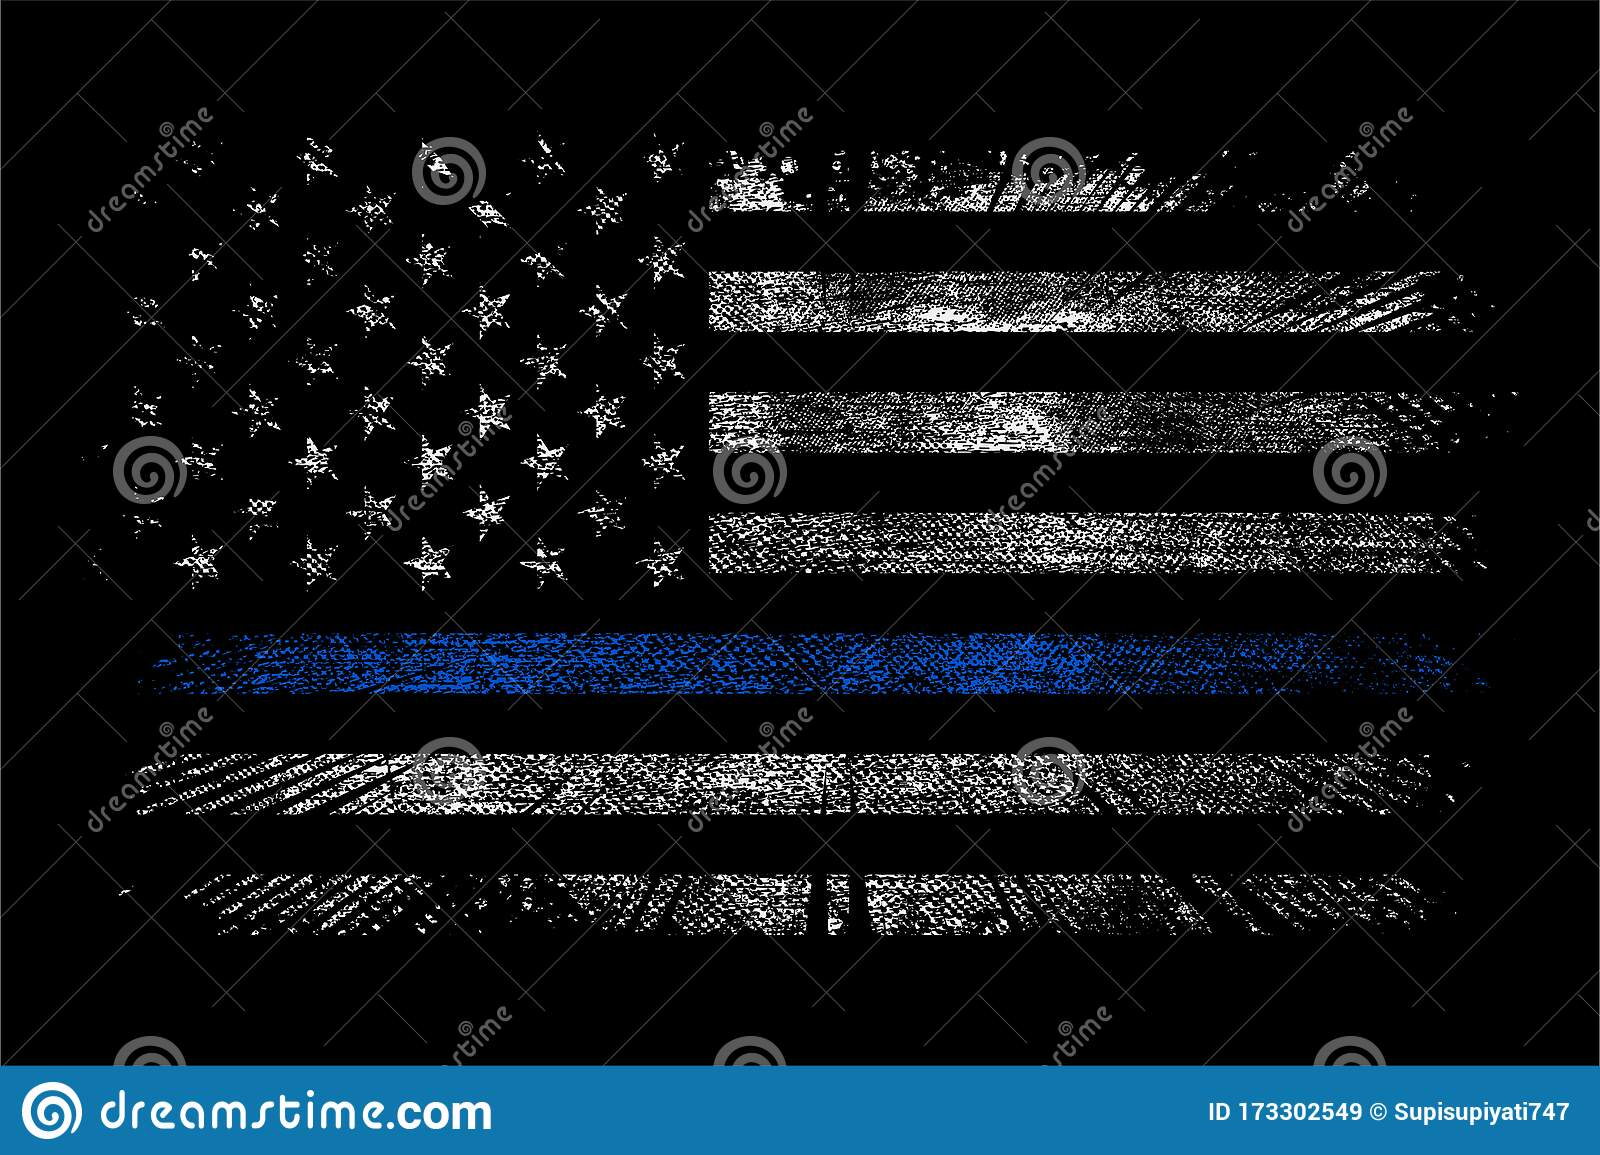 Grunge Usa Police With Thin Blue Line Wallpaper Background Stock